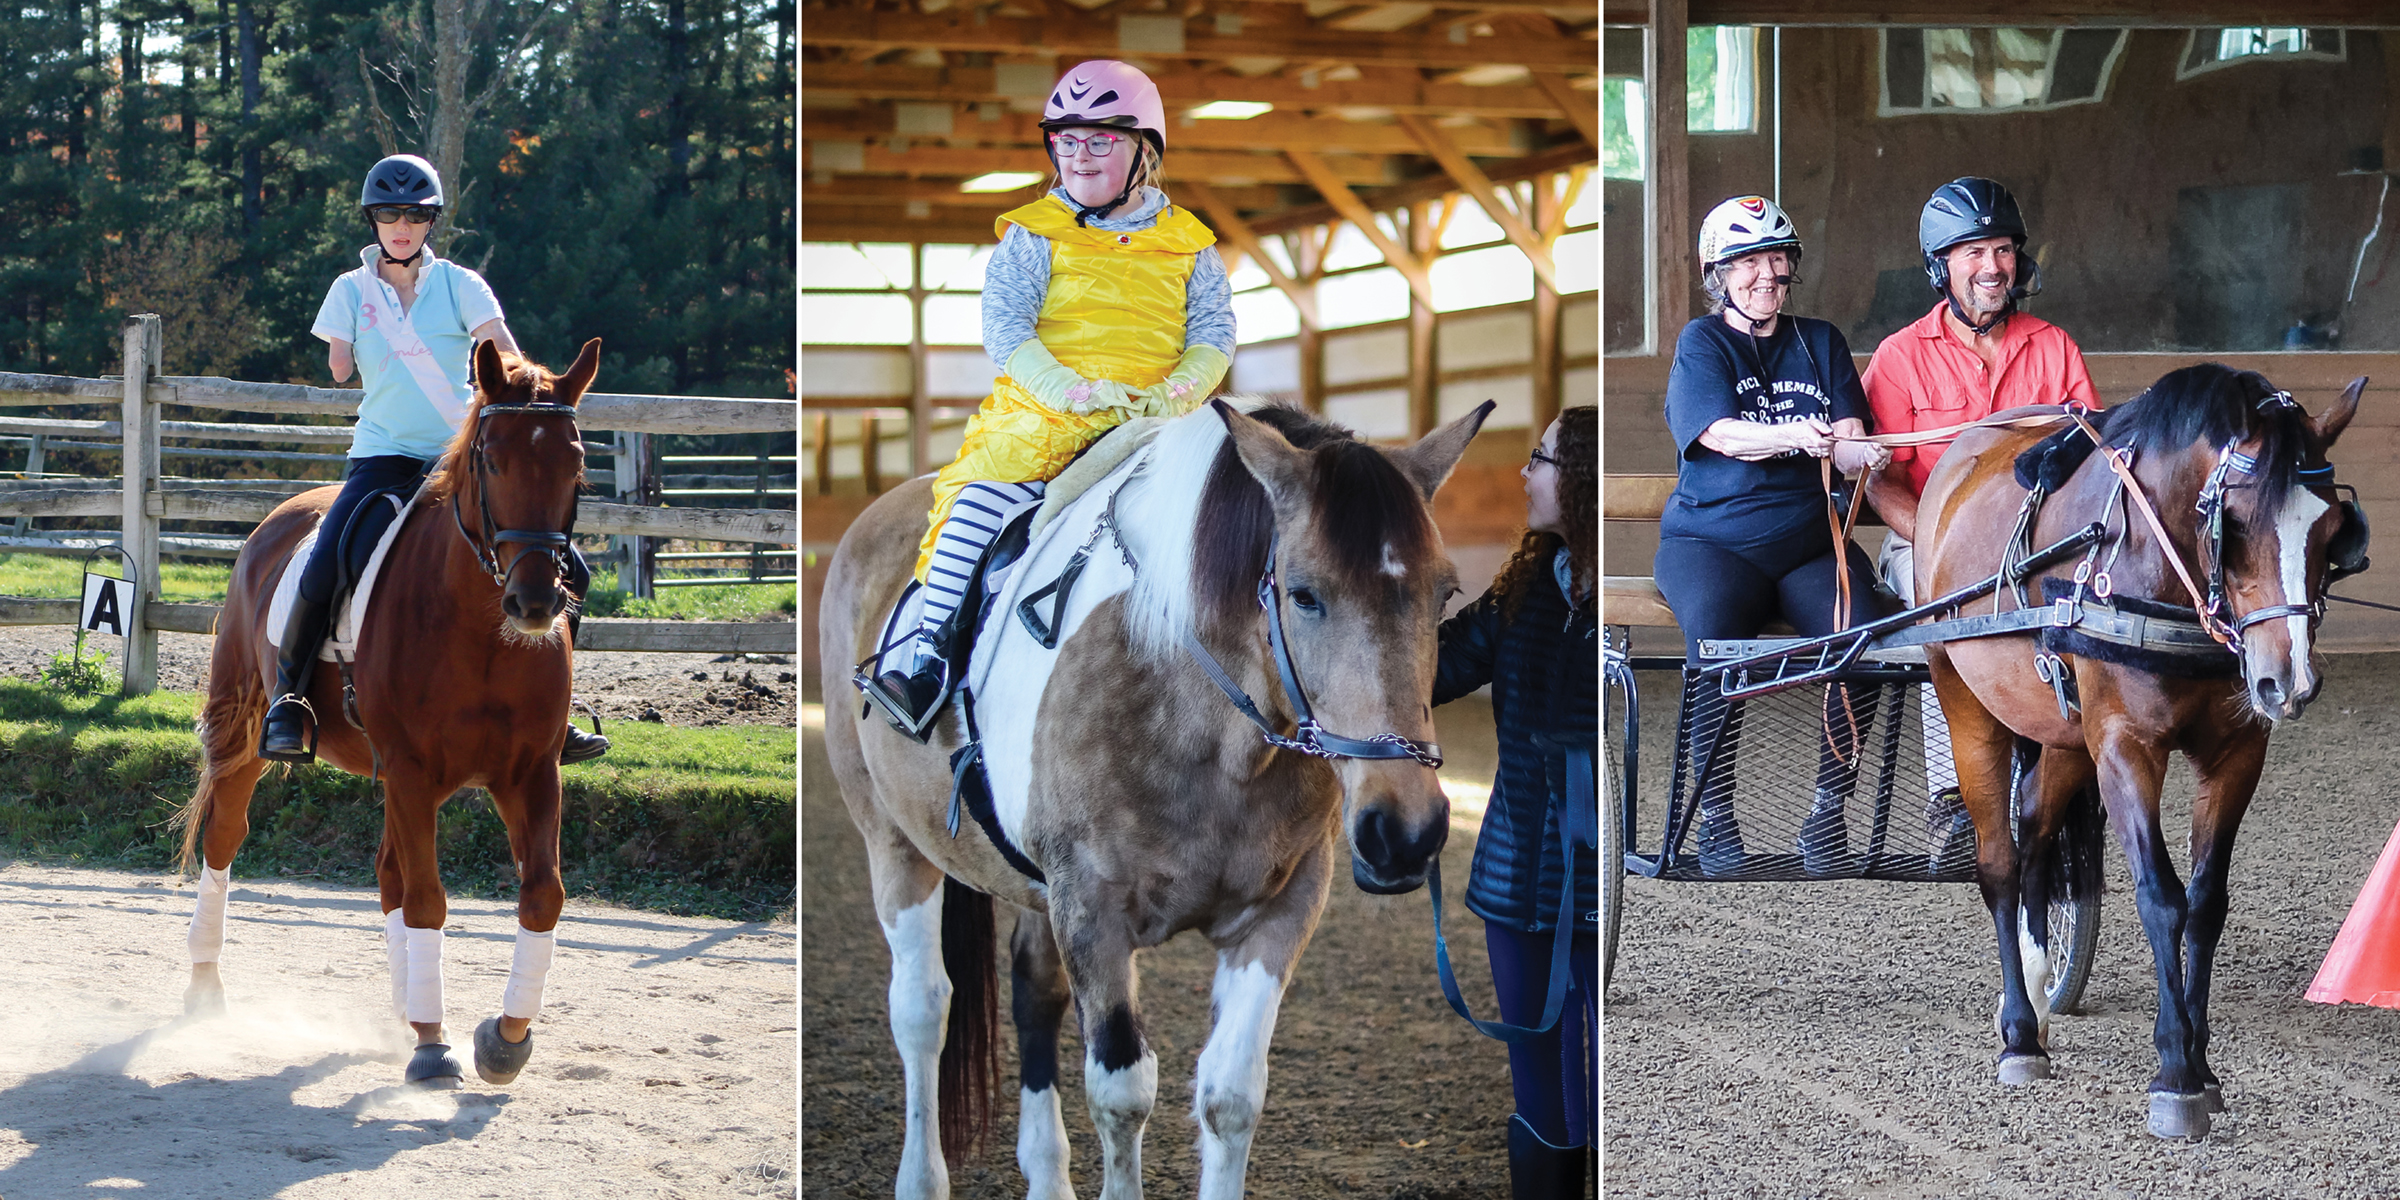 collage of various adaptive and para sports riders